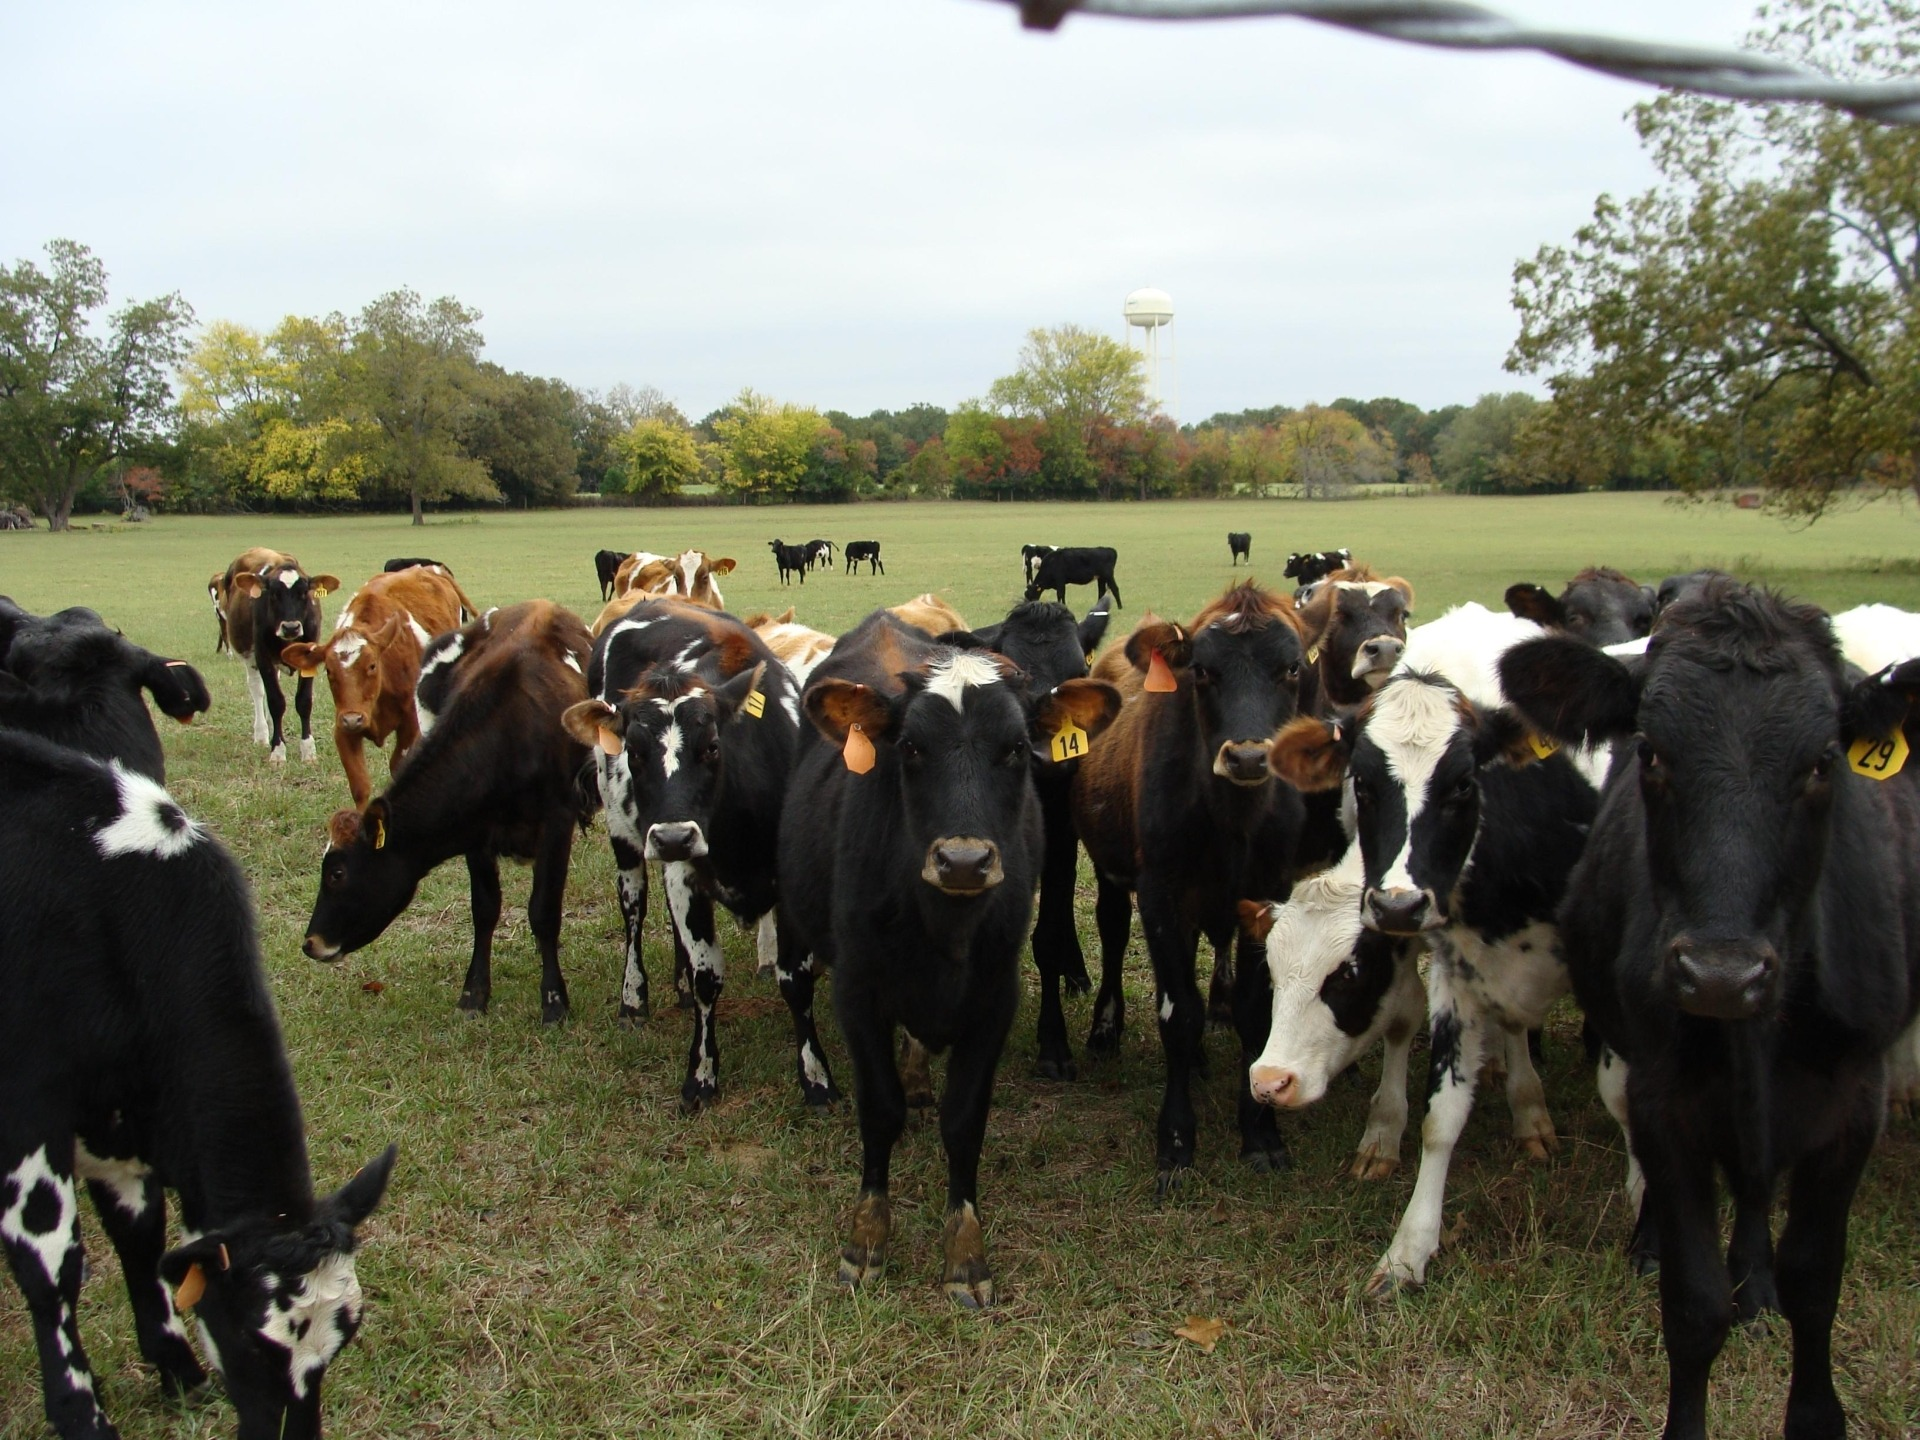 Cow Manure Makes Great Free Fertilizer